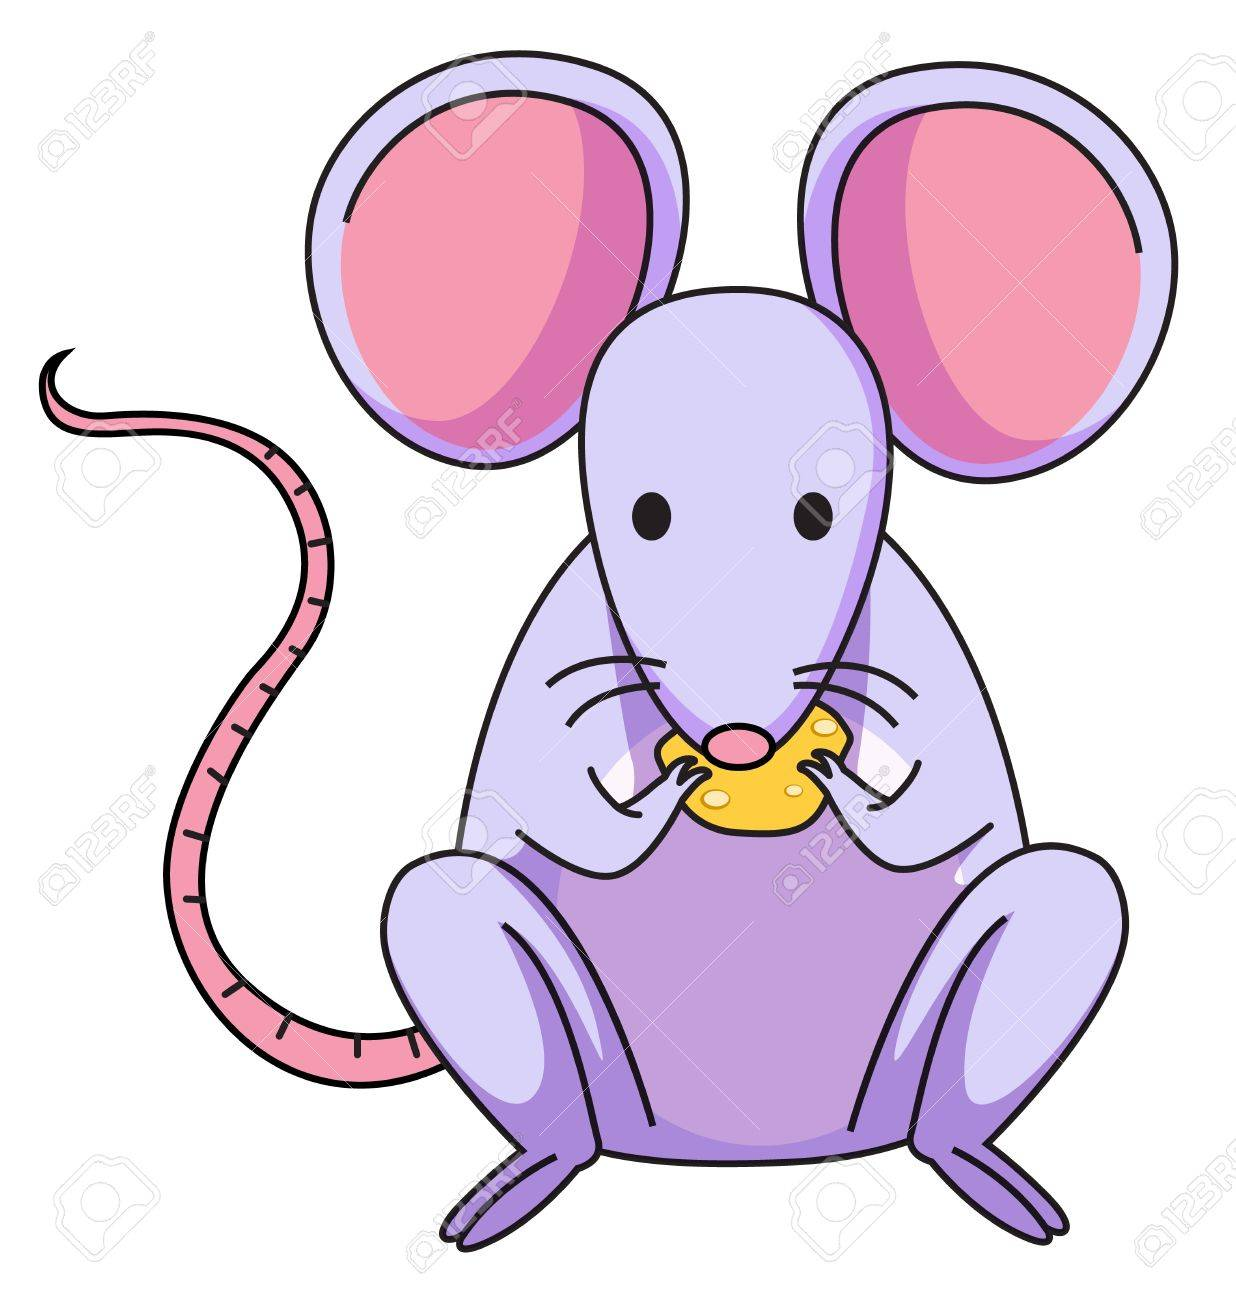 Illustration of a purple mouse Stock Vector - 13593694